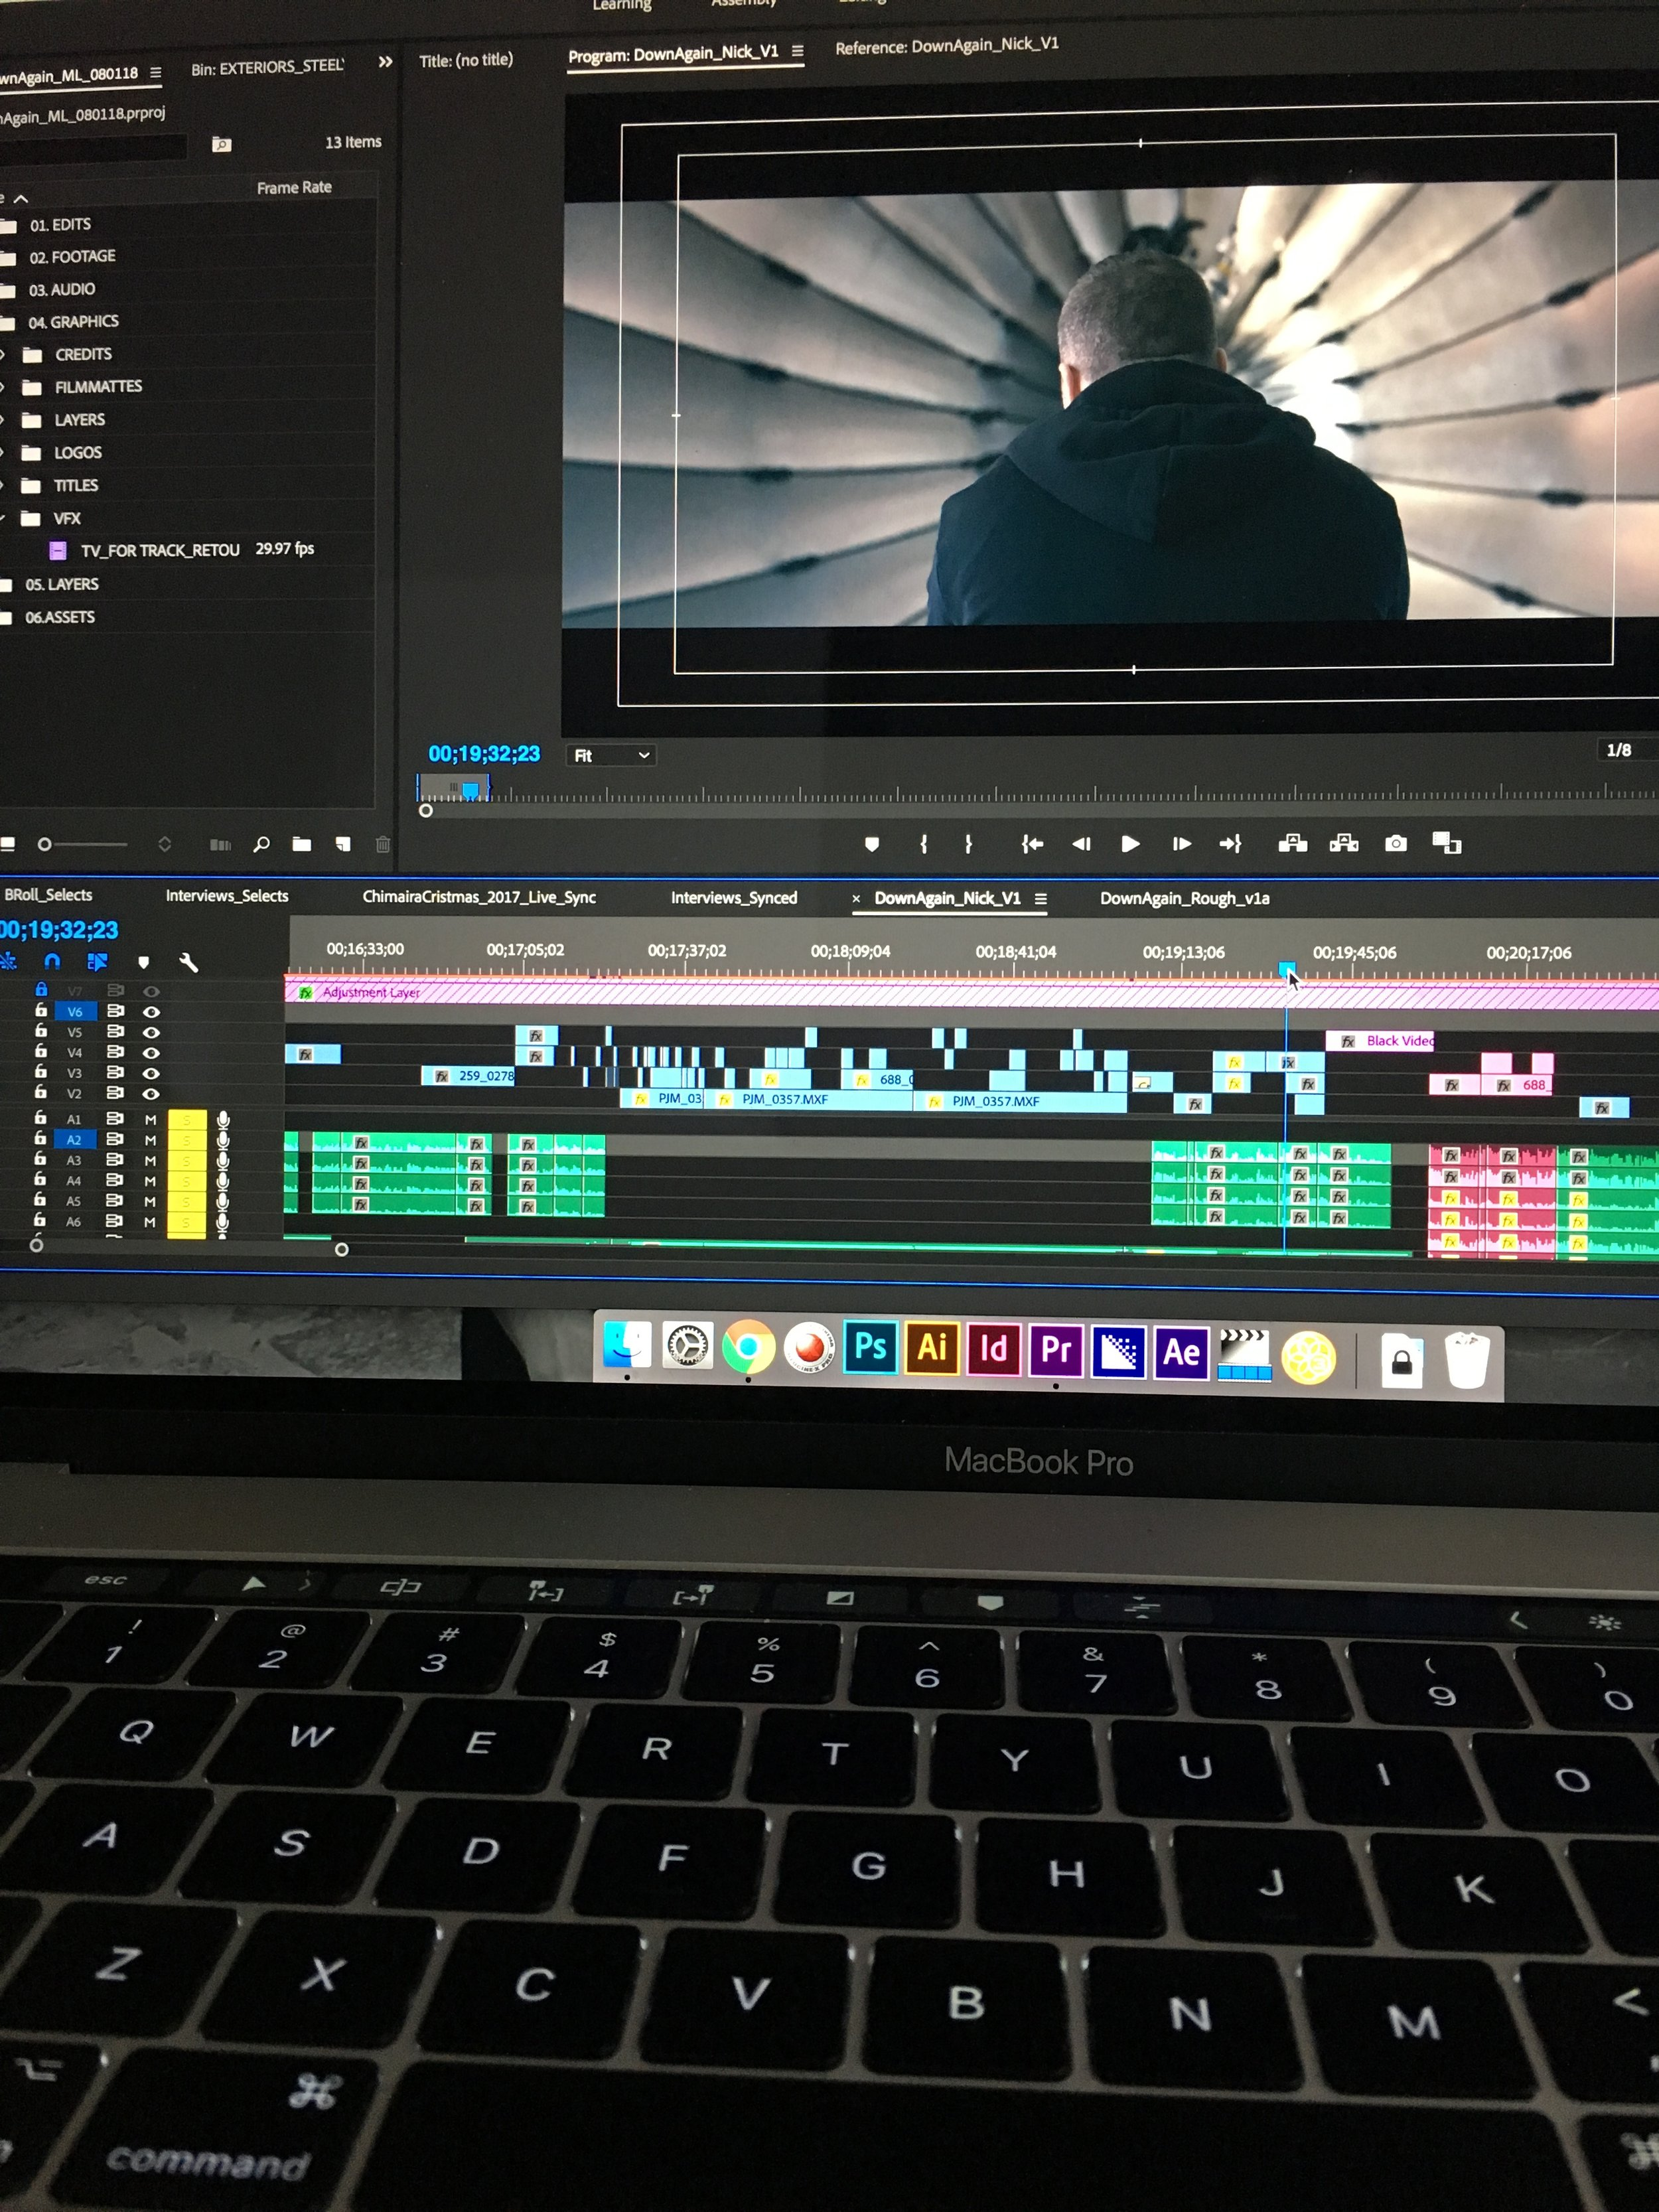 Editing for Down Again